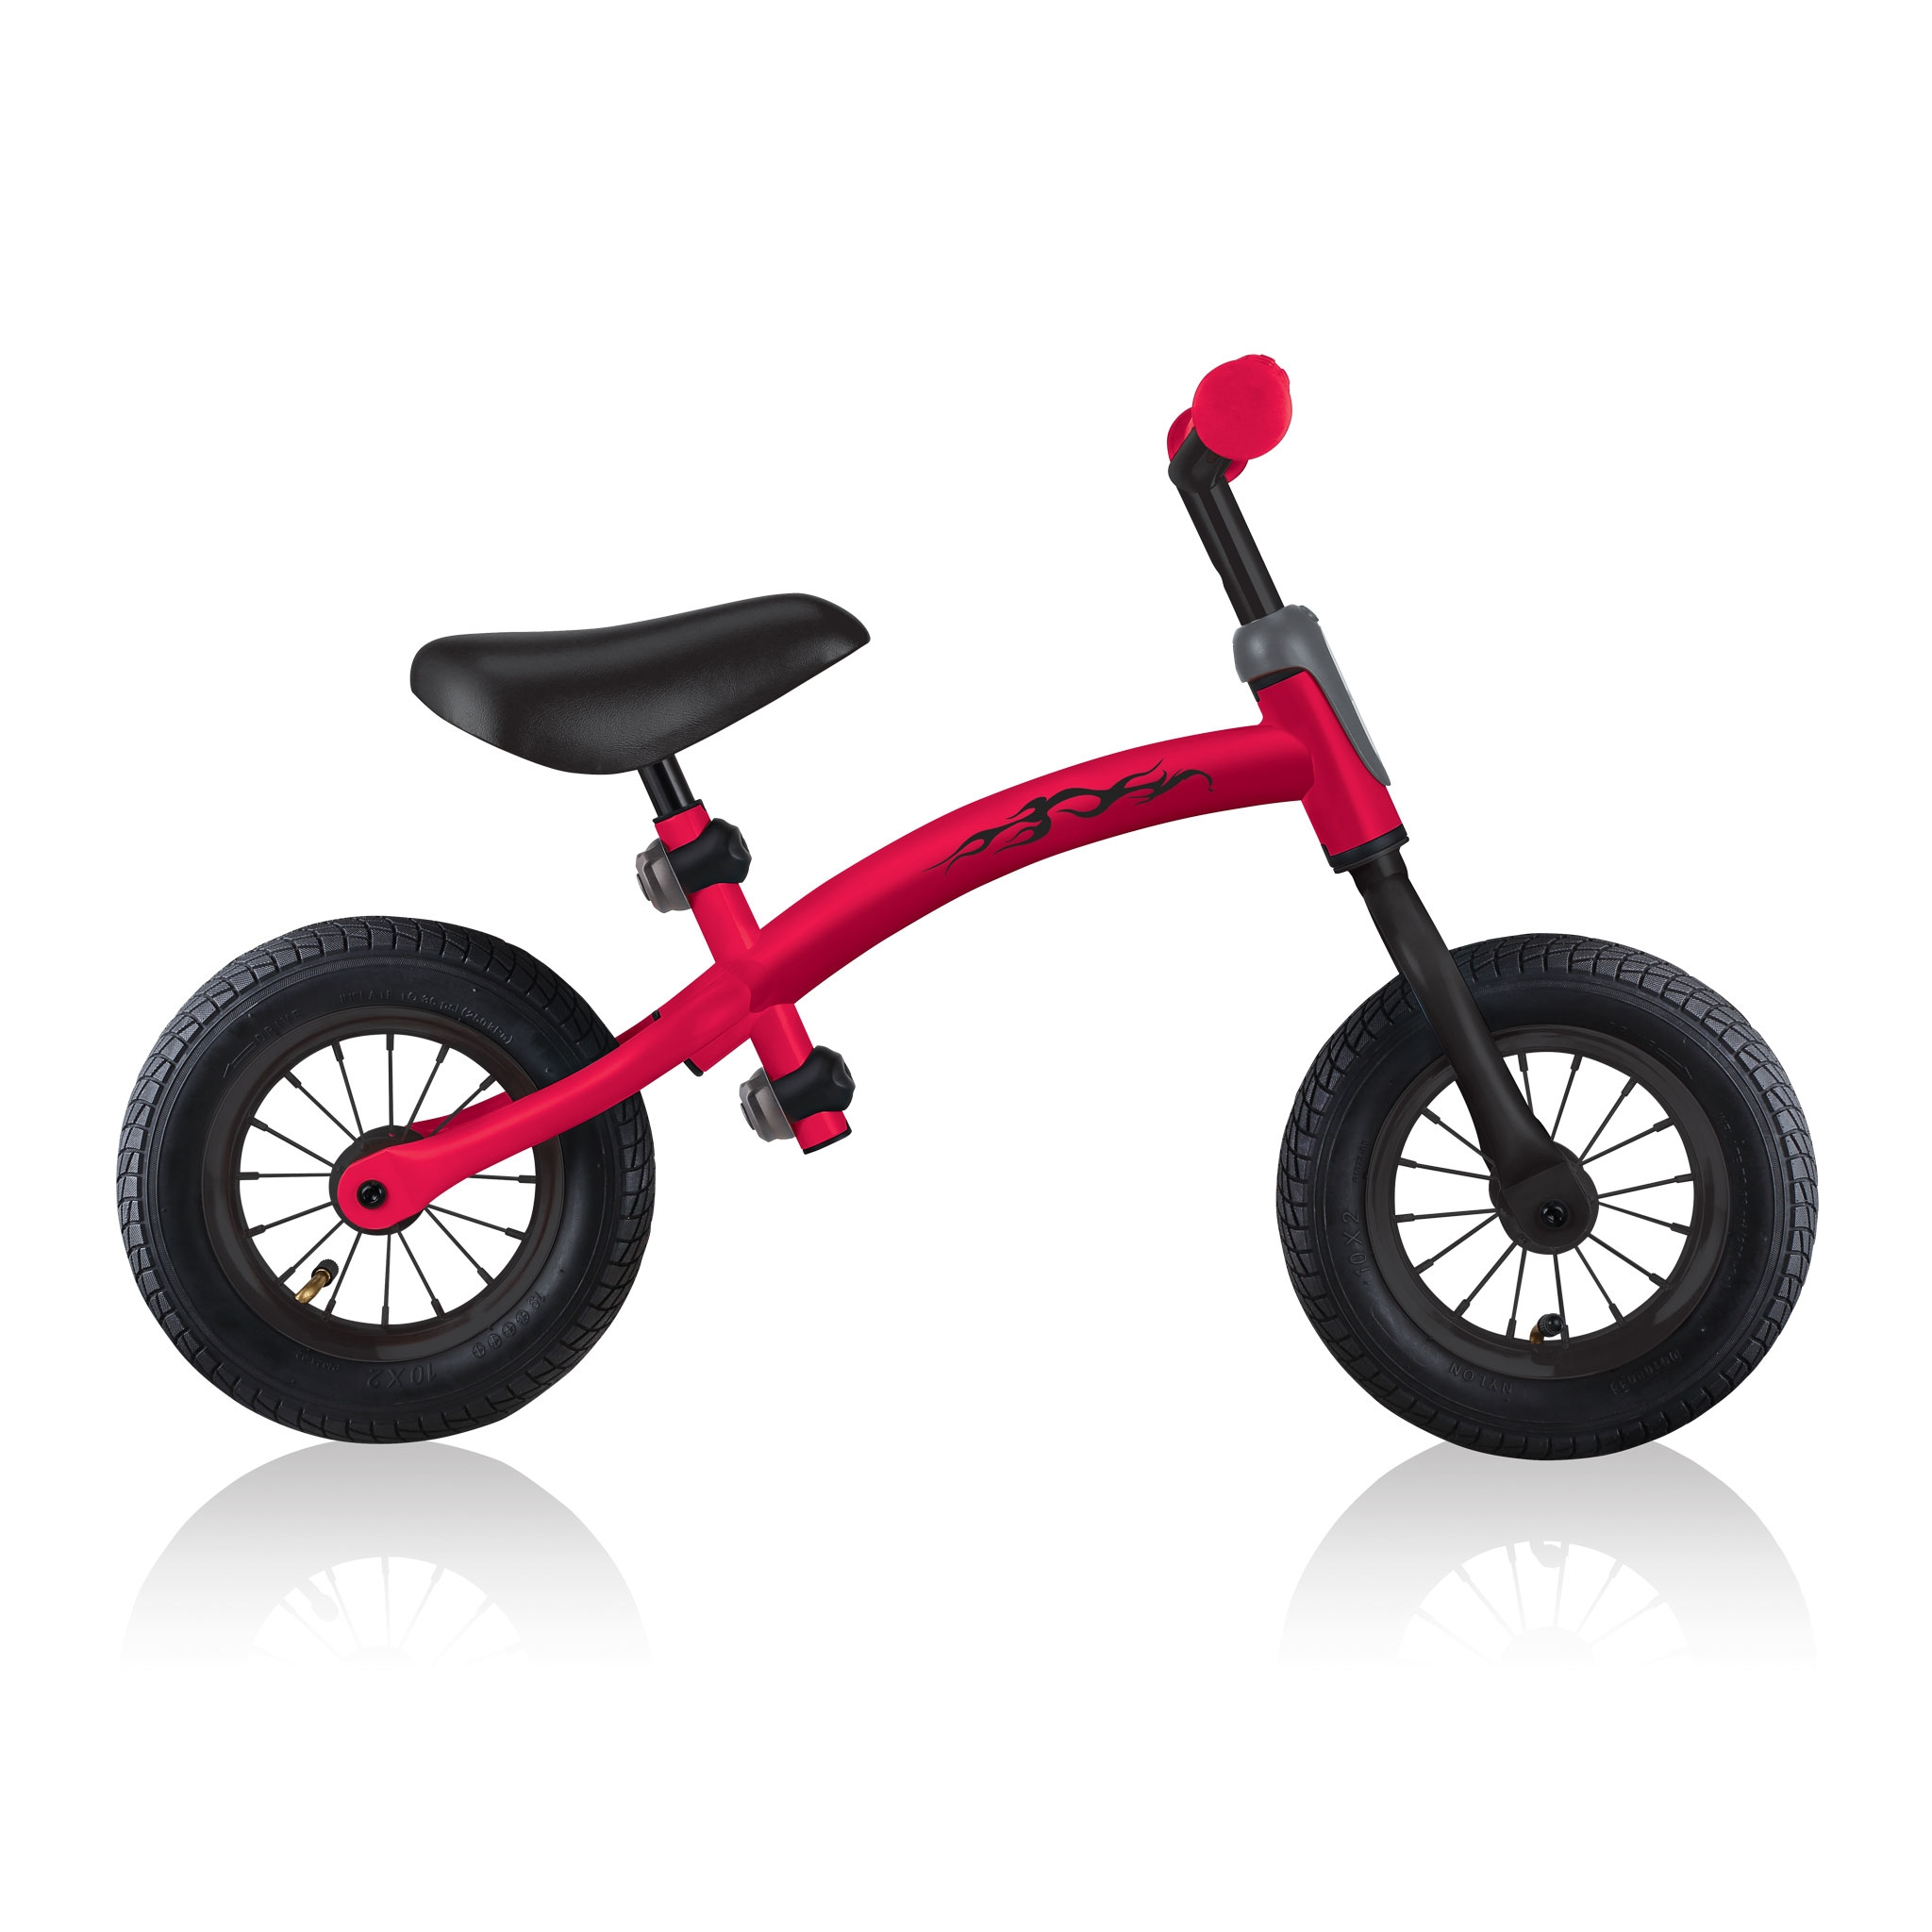 GO-BIKE-AIR-toddler-balance-bike-with-robust-steel-frame-and-shock-absorbing-rubber-tyres_red 5